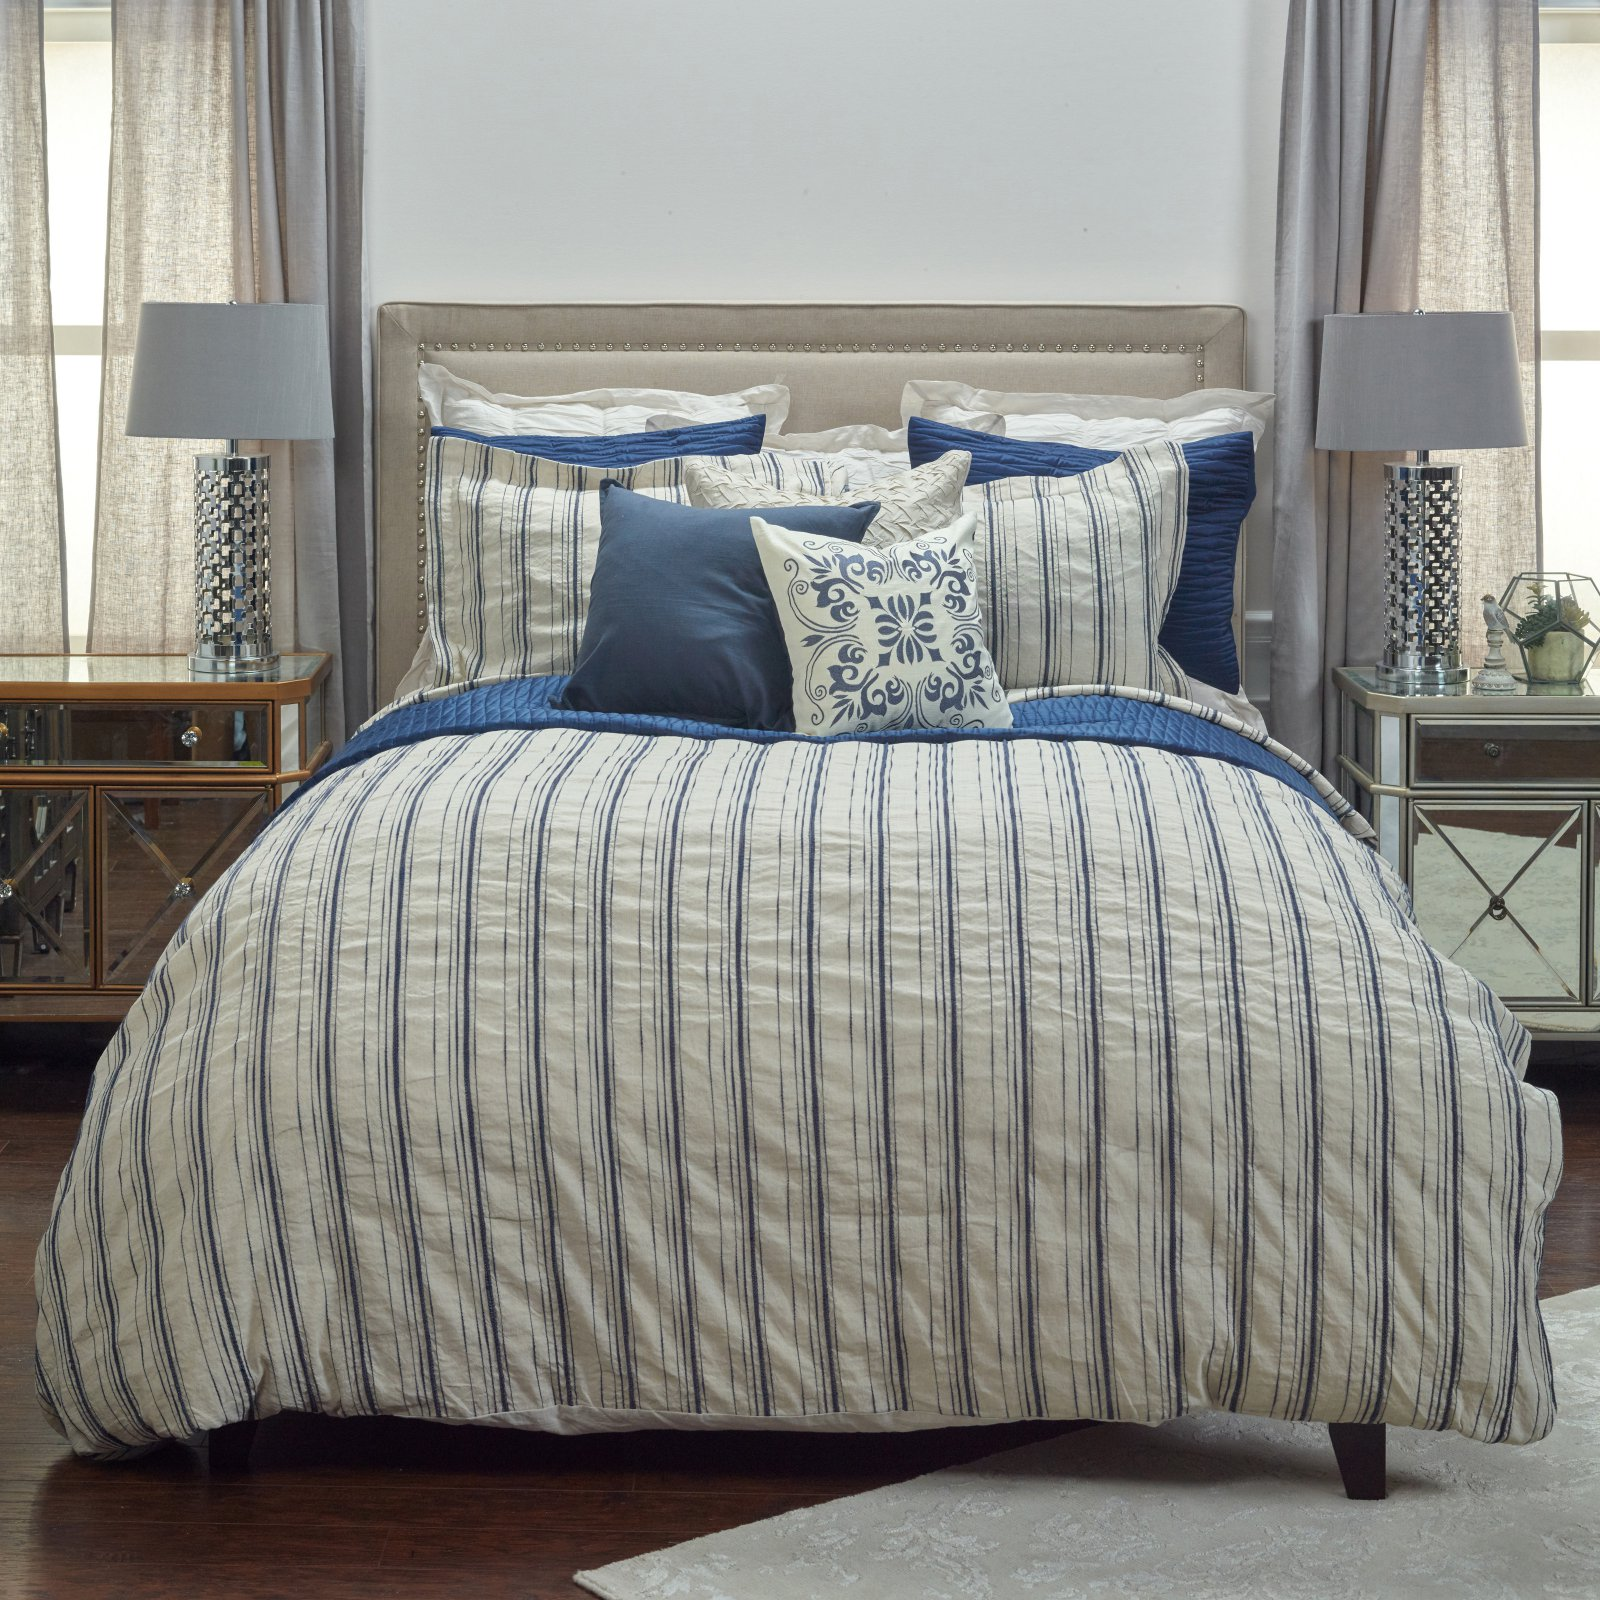 Rizzy Home BT4052 Queen Linen Duvet